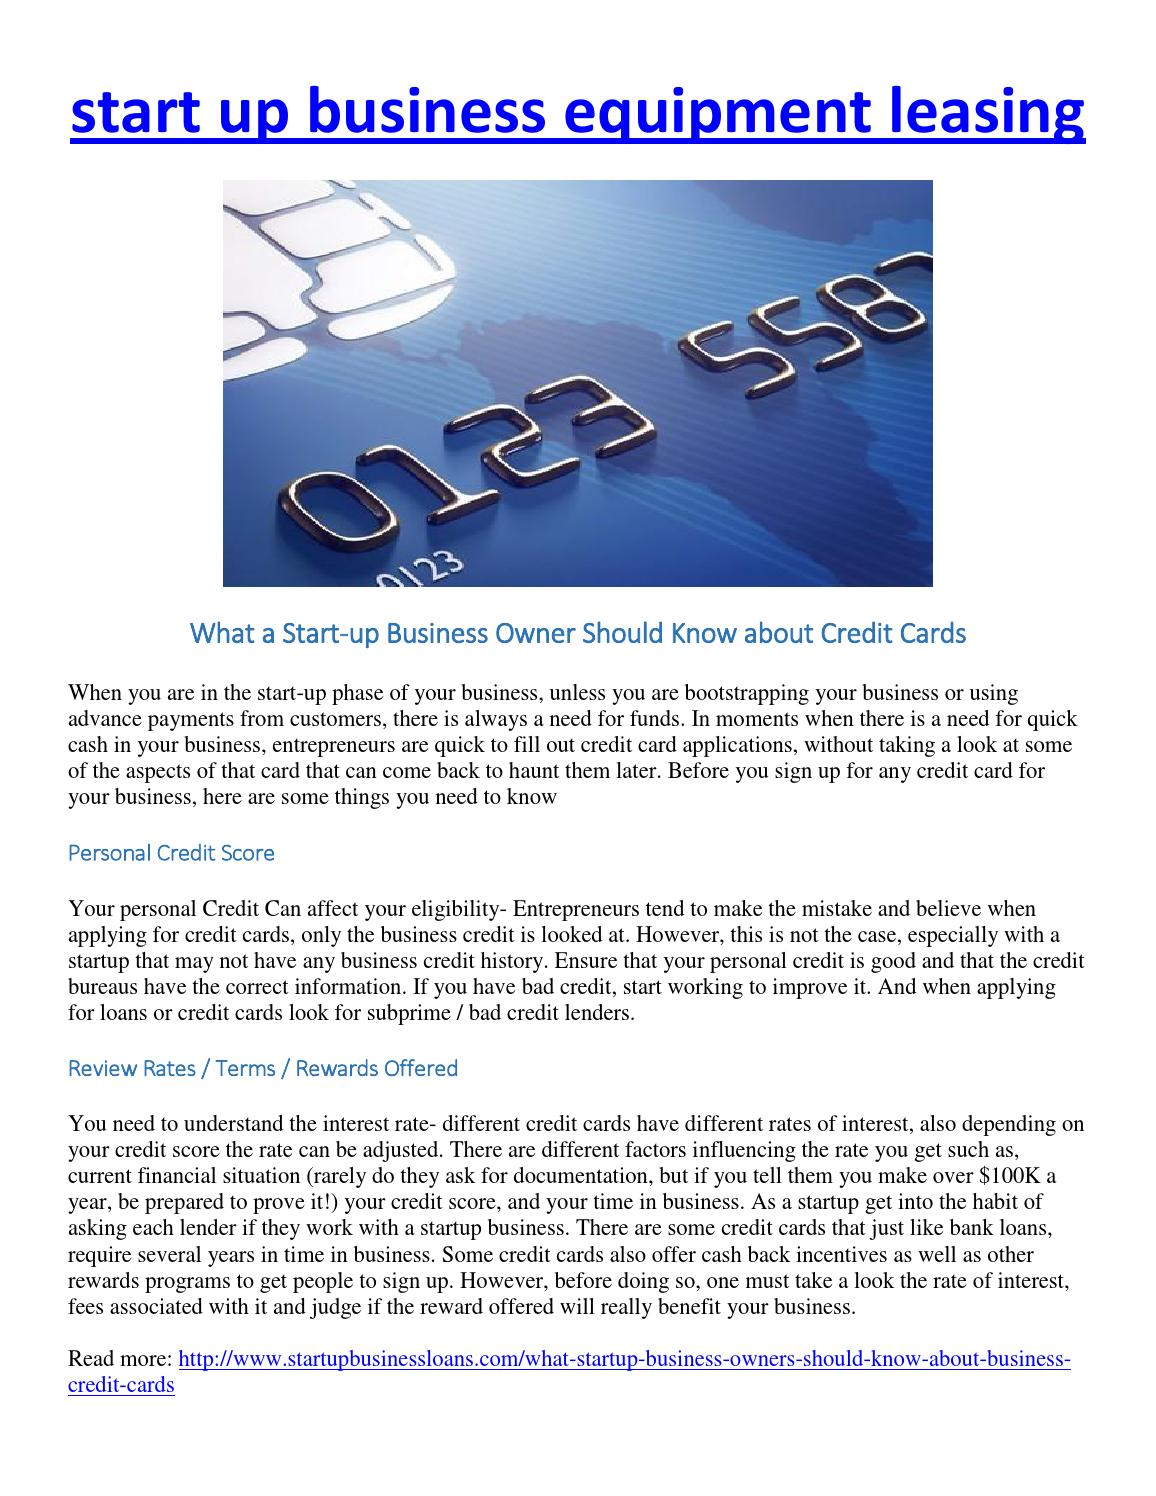 What a start up business owner should know about business credit what a start up business owner should know about business credit cards by mary s anderson issuu reheart